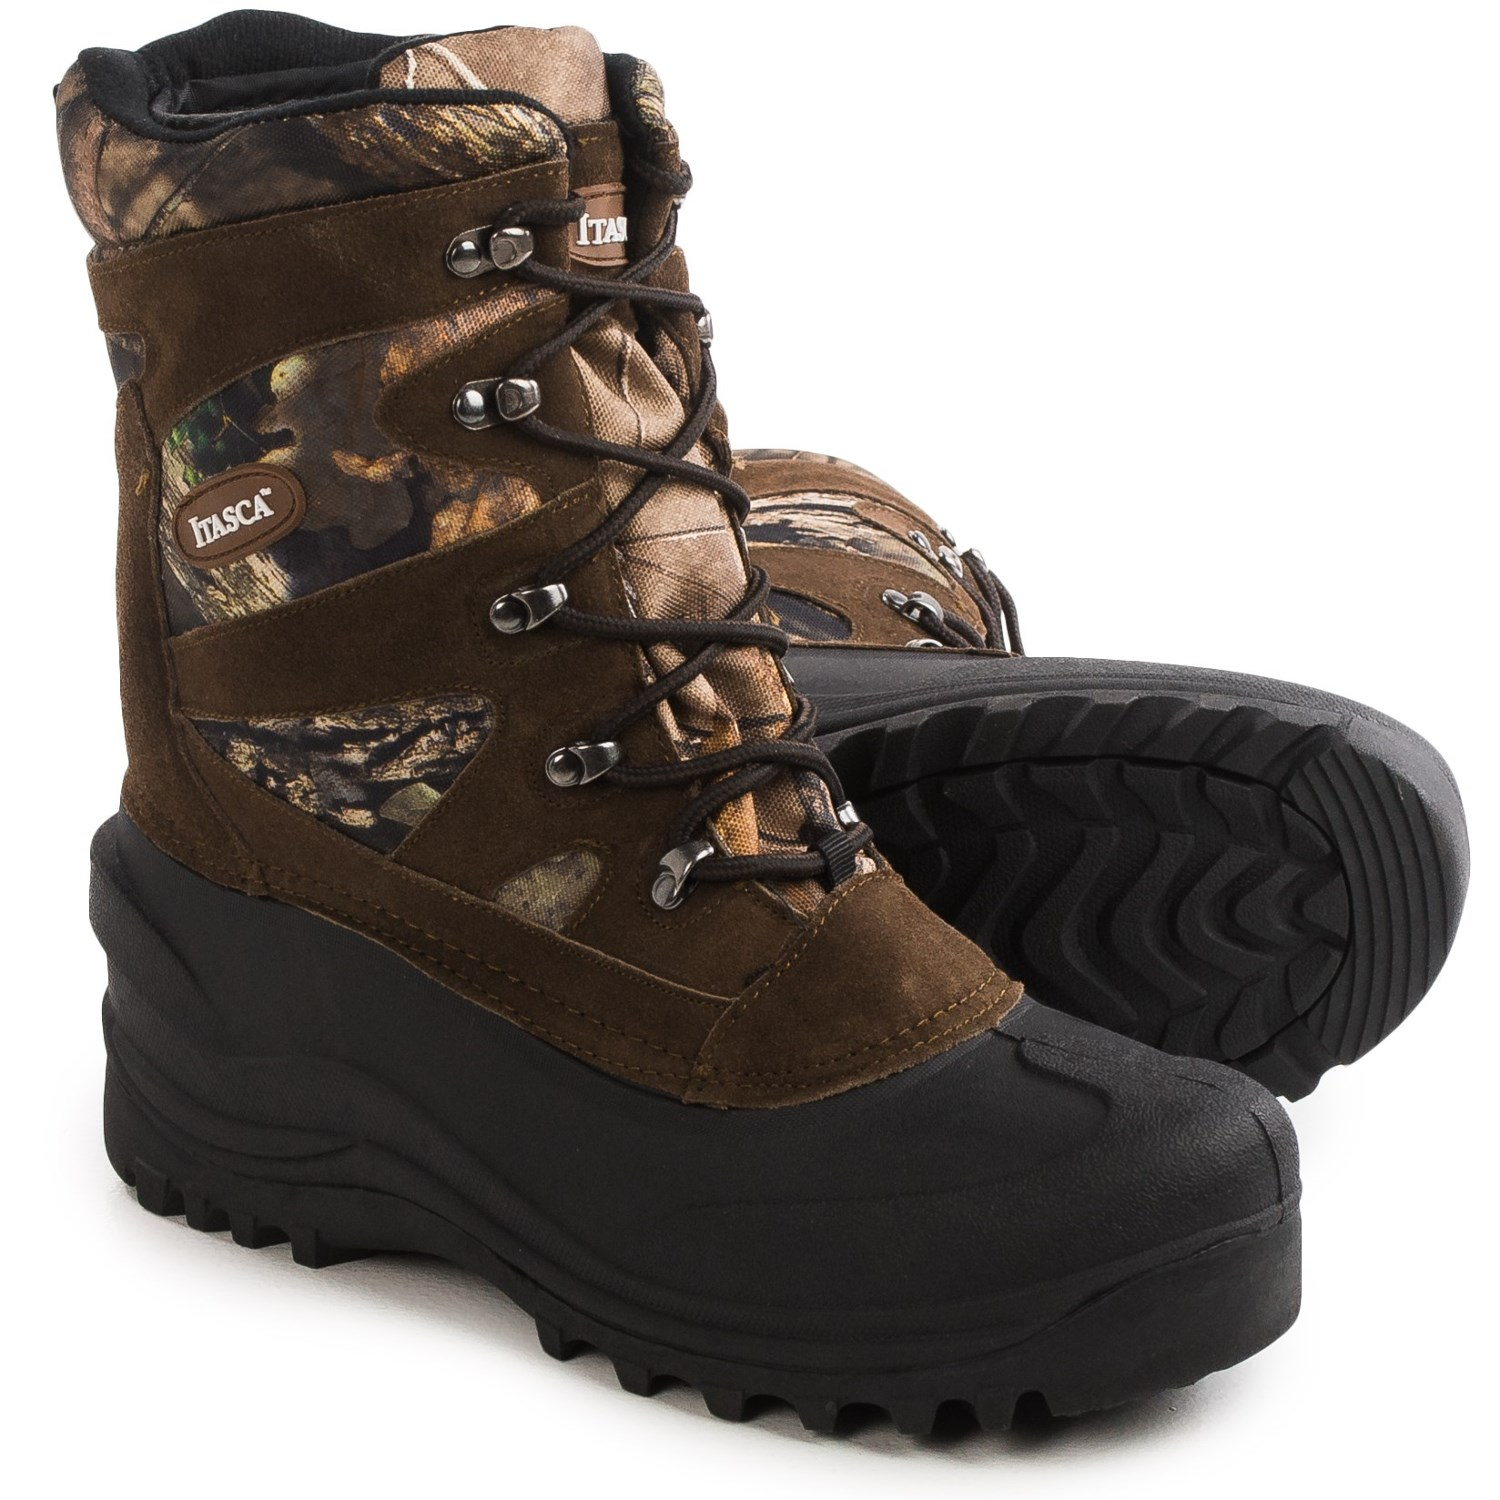 Itasca Ketchikan Pac Boots (For Men) - Save 77%